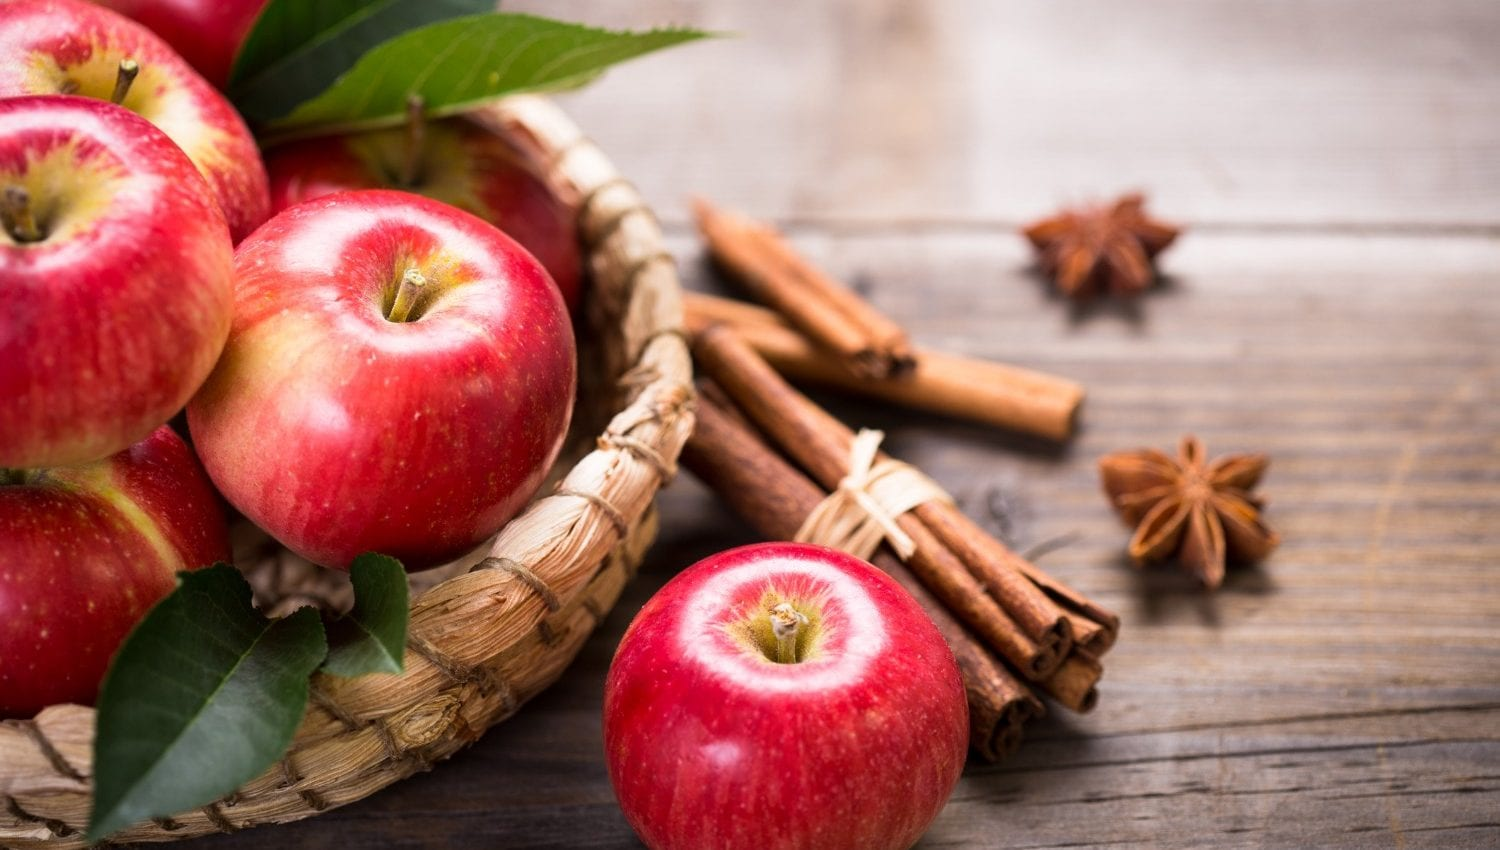 Basket of red apples with cinnamon sticks